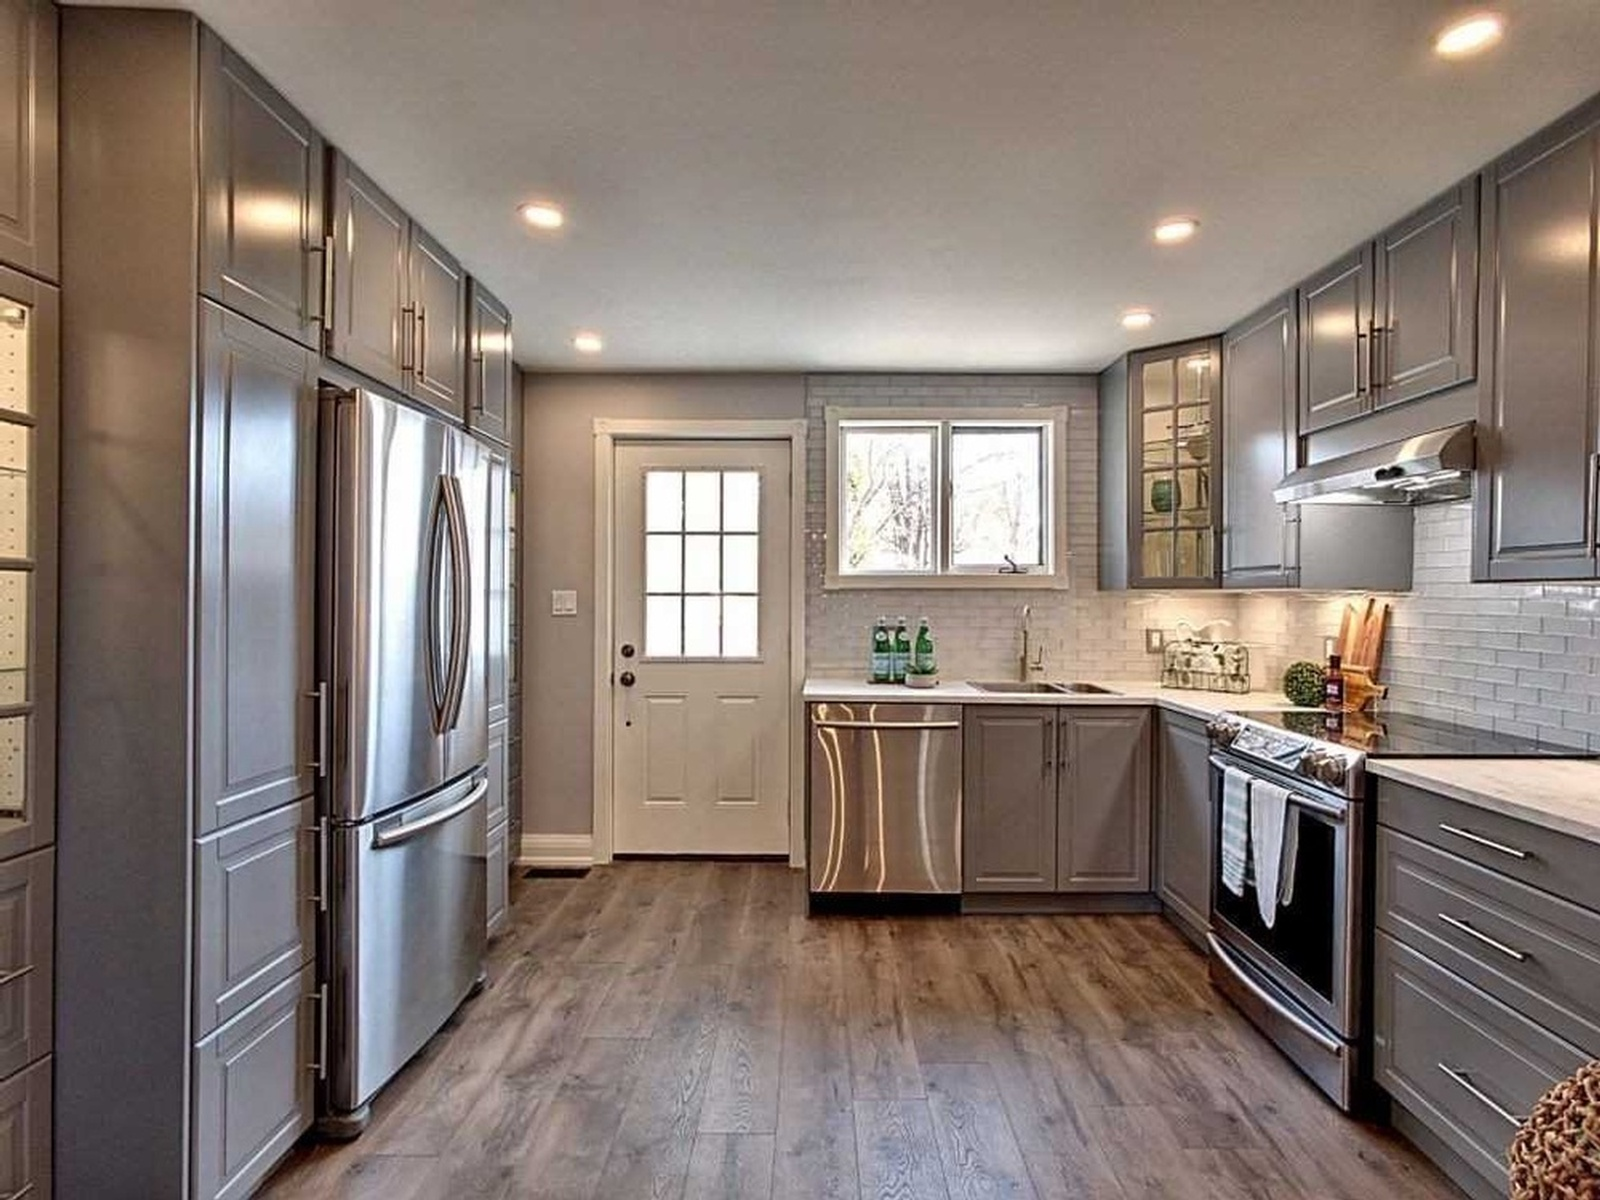 Modular Kitchen - Home Staging Services Oshawa by Impressive Staging